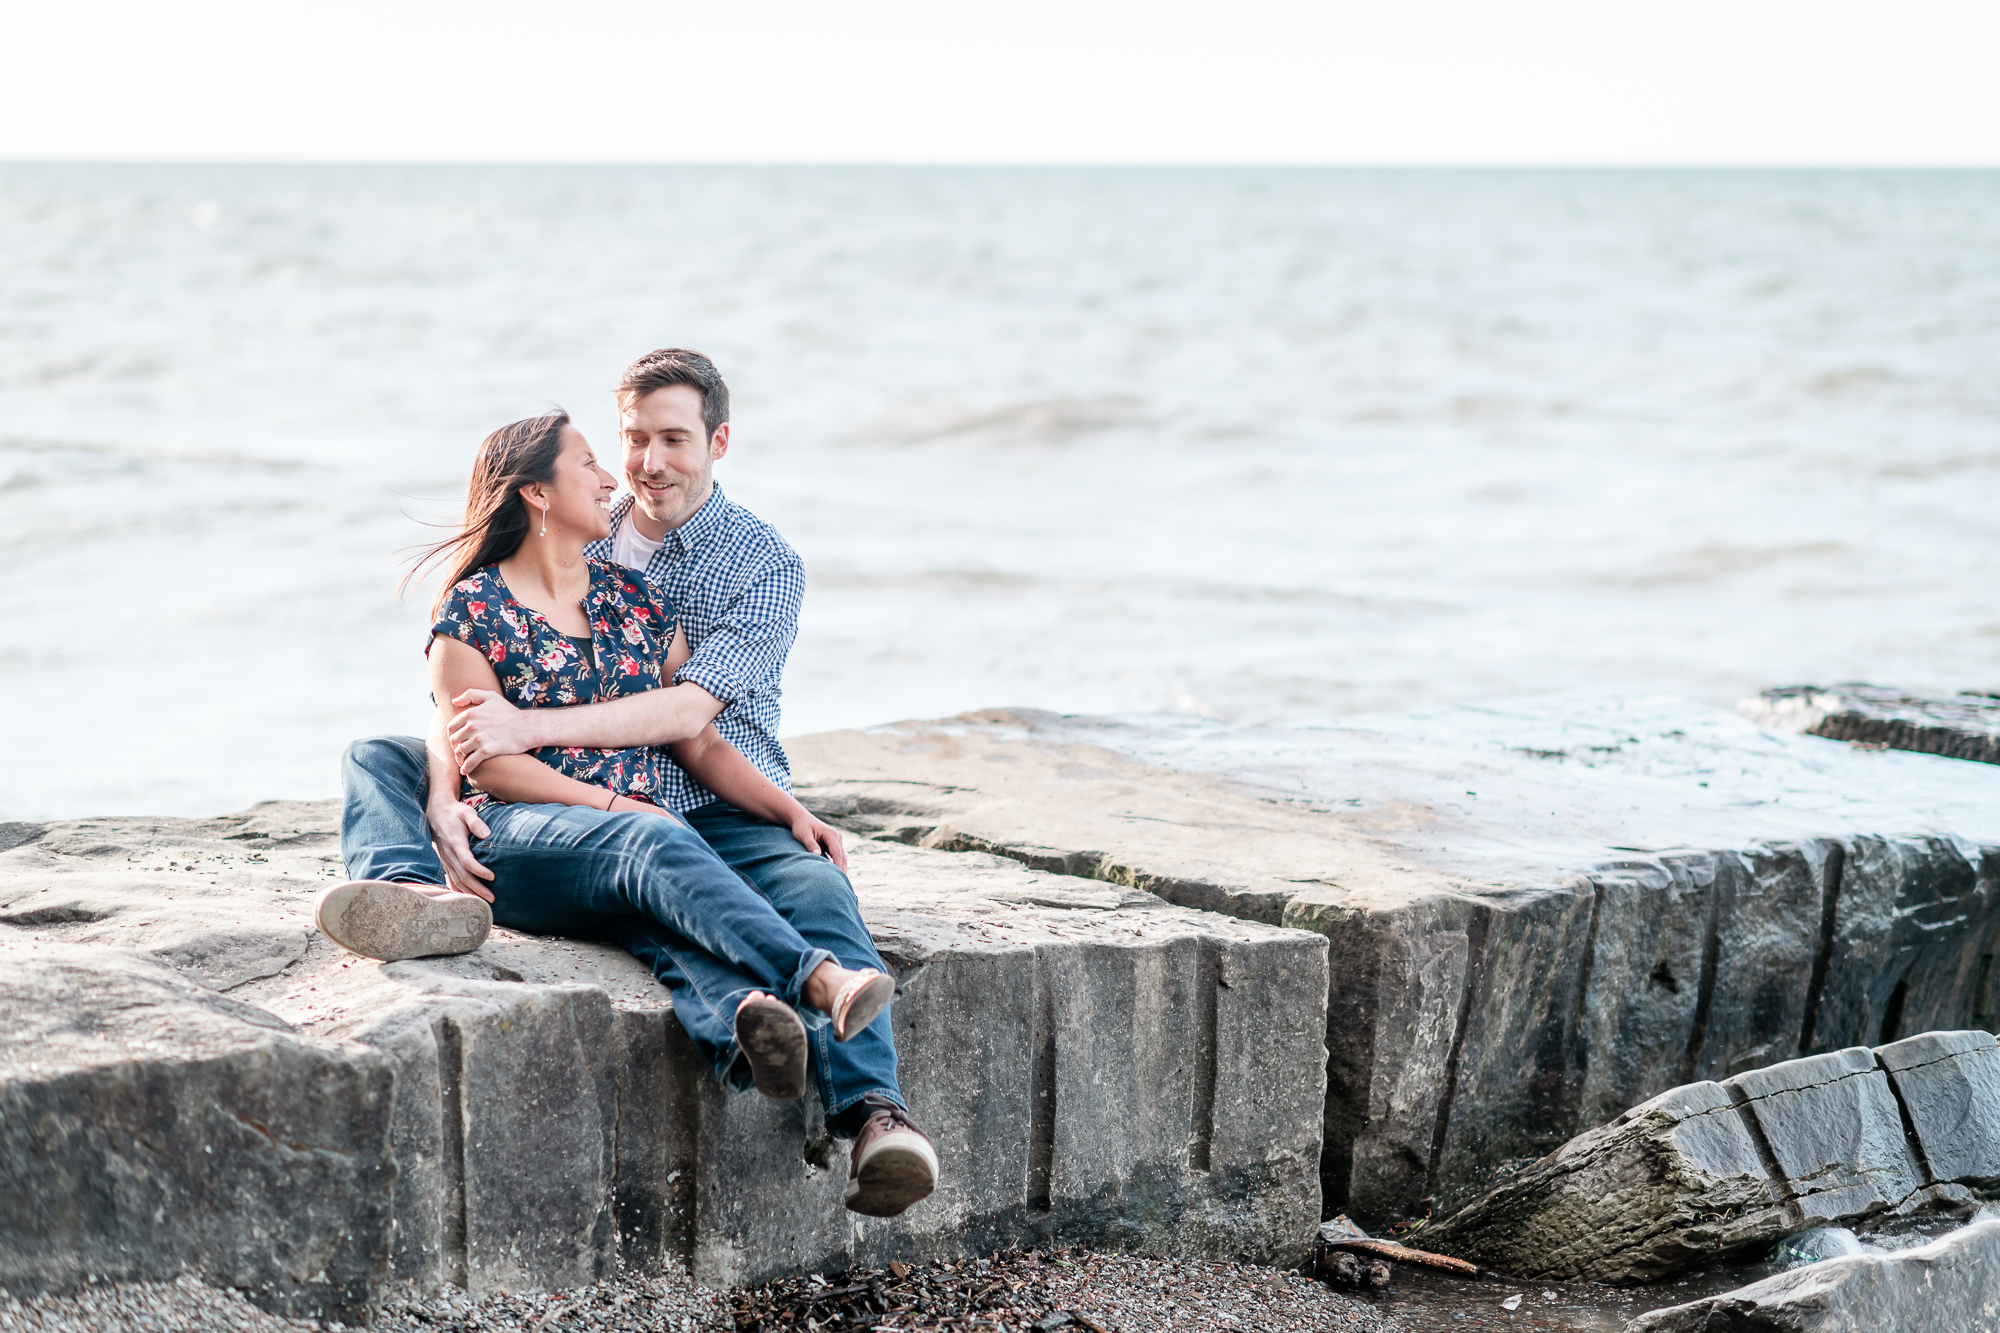 Maria+Adam_Engagement_Huntington Beach Ohio-29.jpg